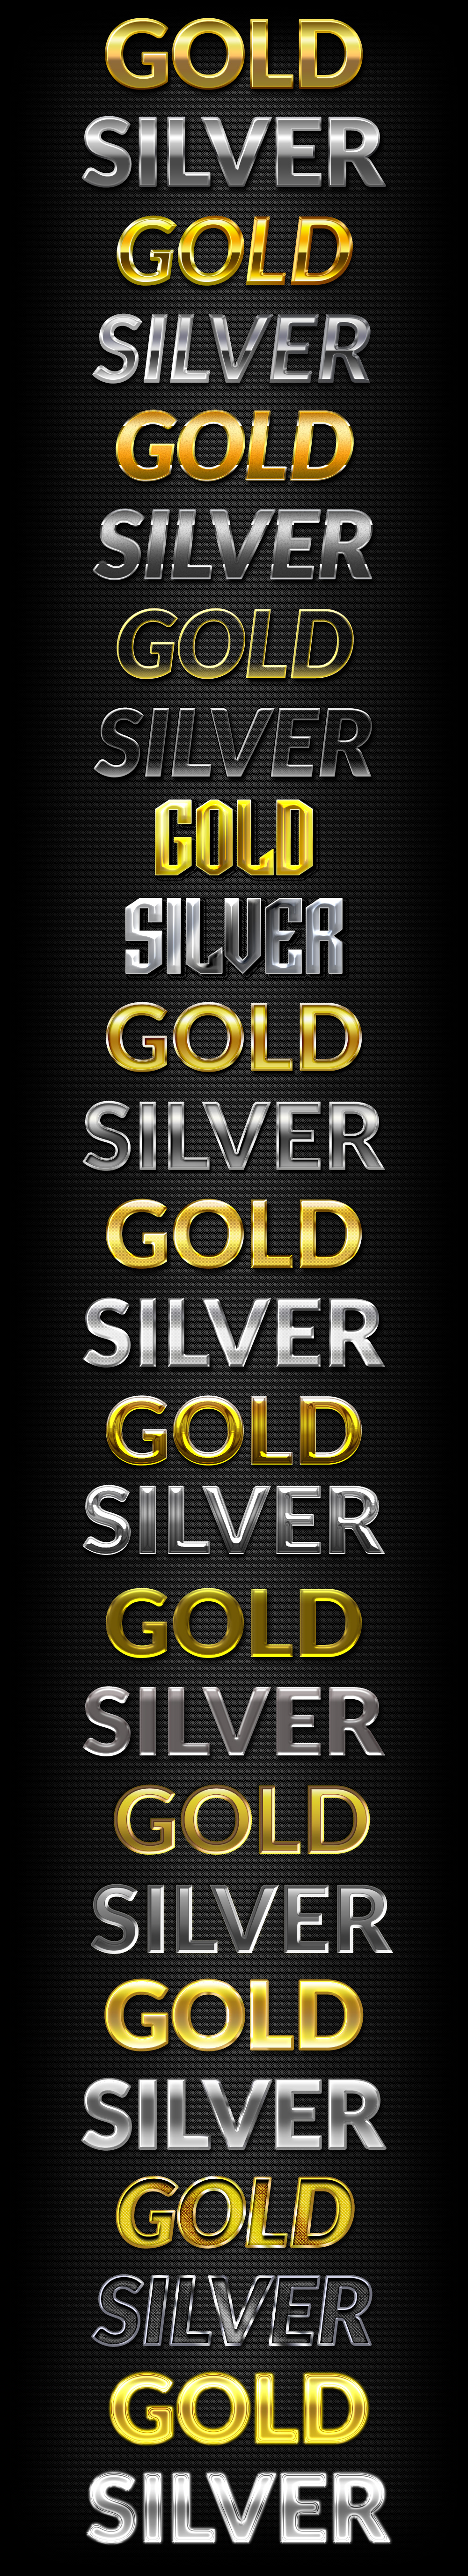 gold-silver-text-styles